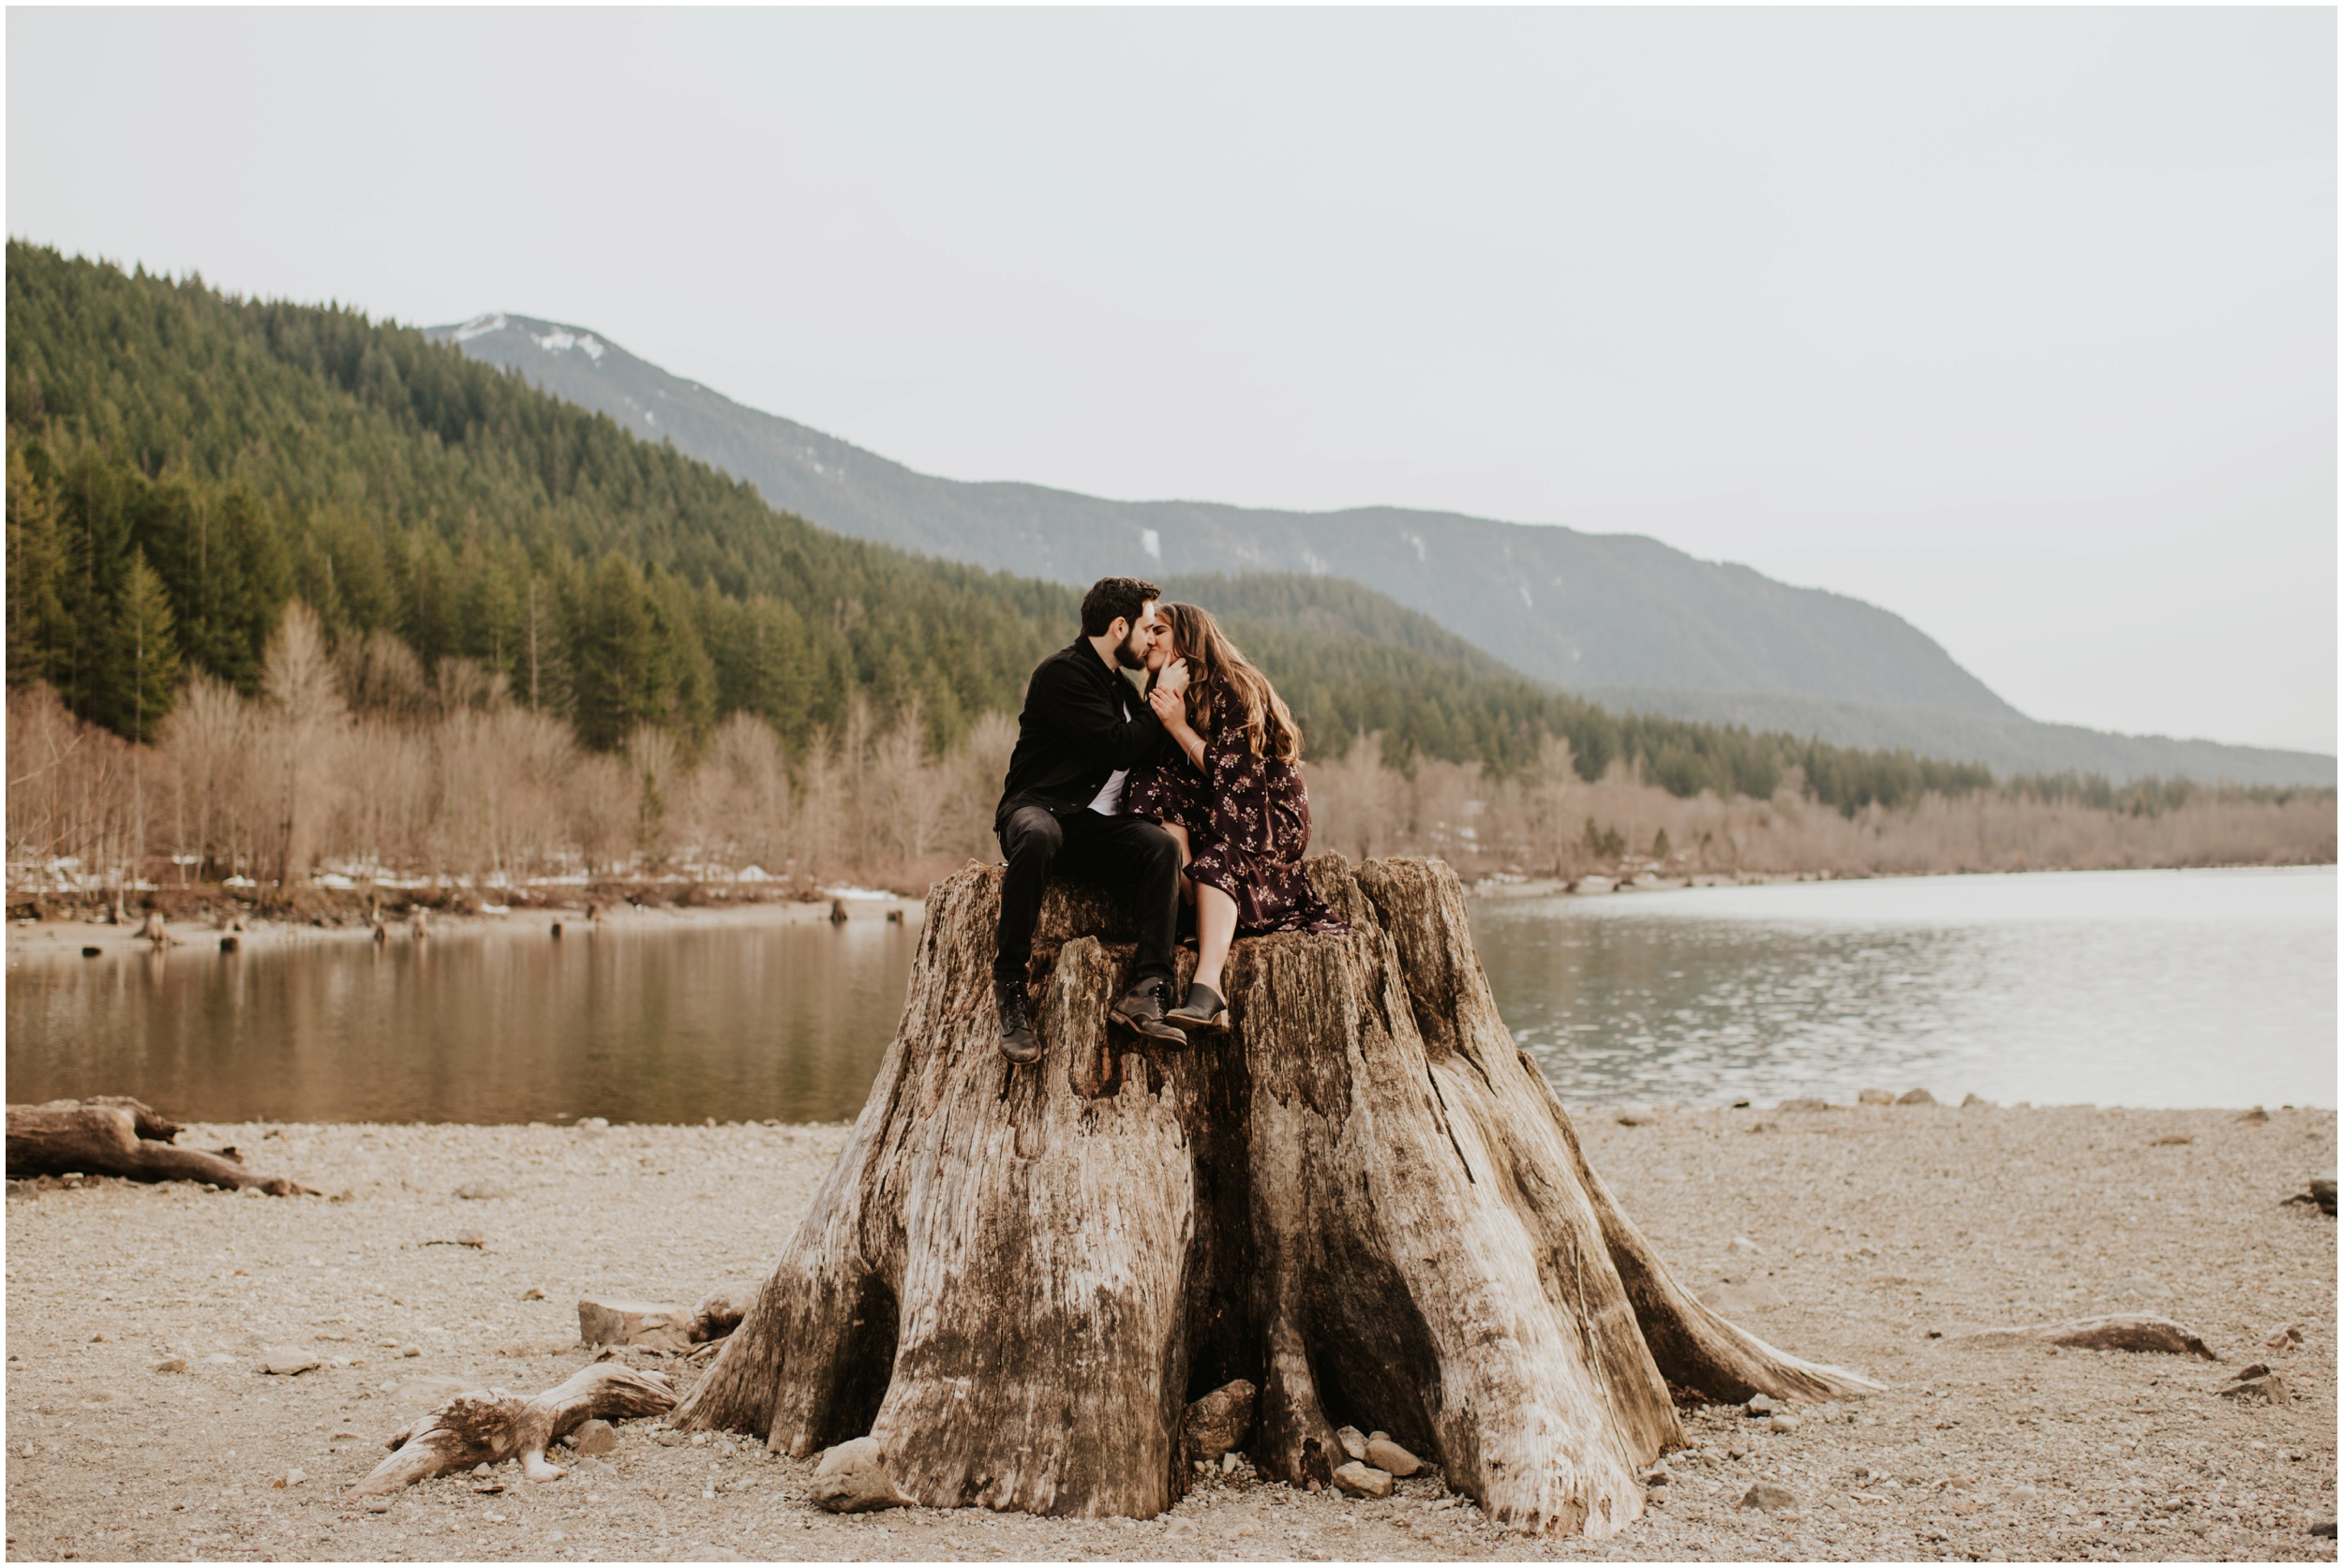 couple cuddling on tree Rattlesnake Lake, WA | Seattle Wedding Photographer www.riversandroadsphotography.com